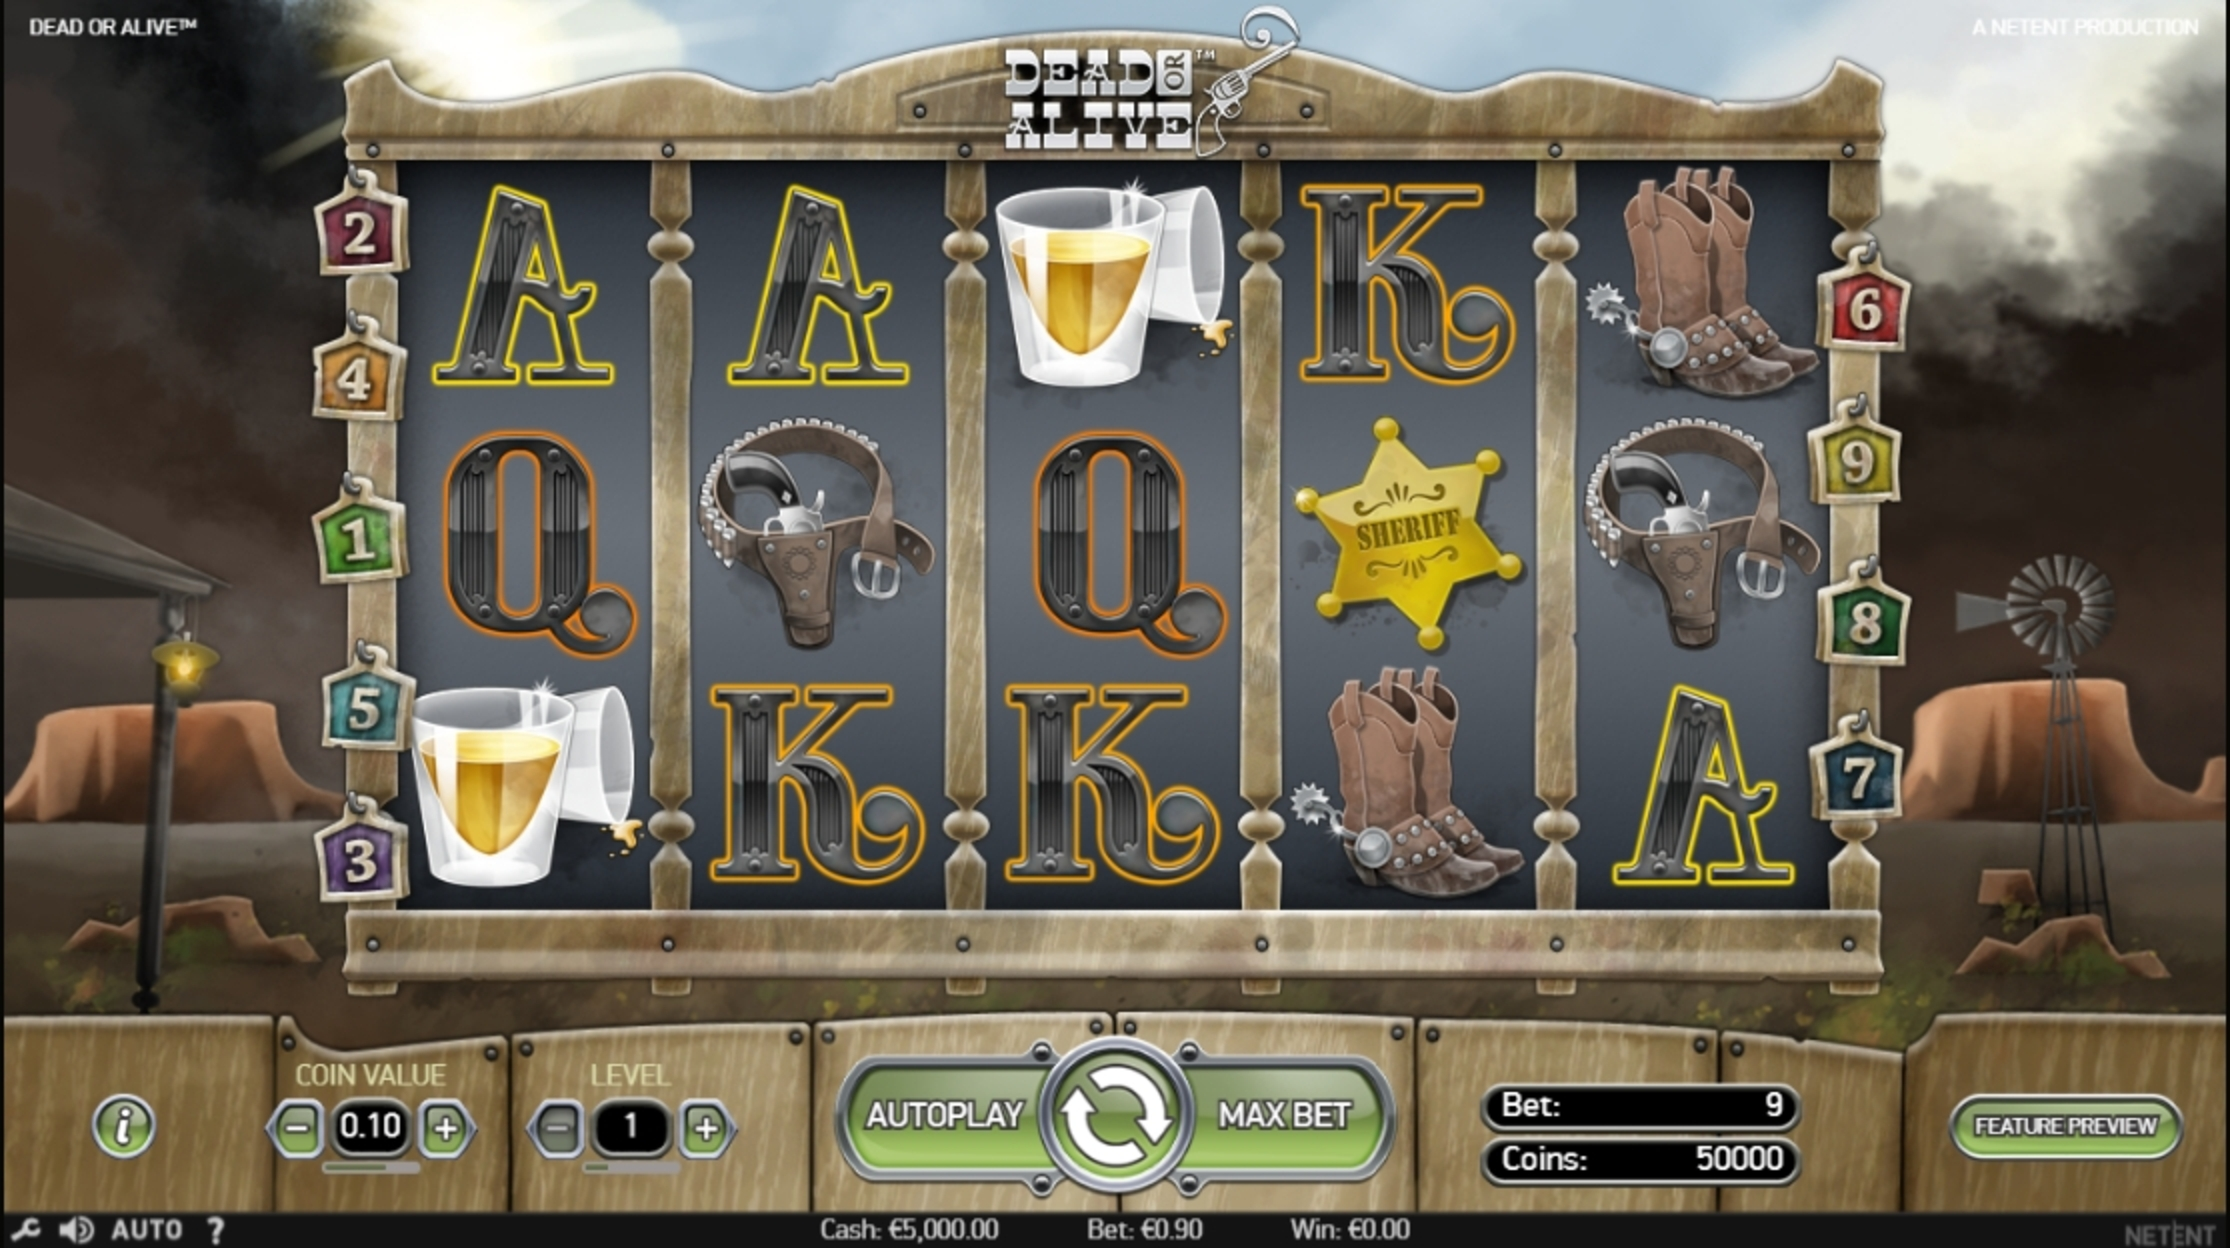 Reels in Dead or Alive Slot Game by NetEnt